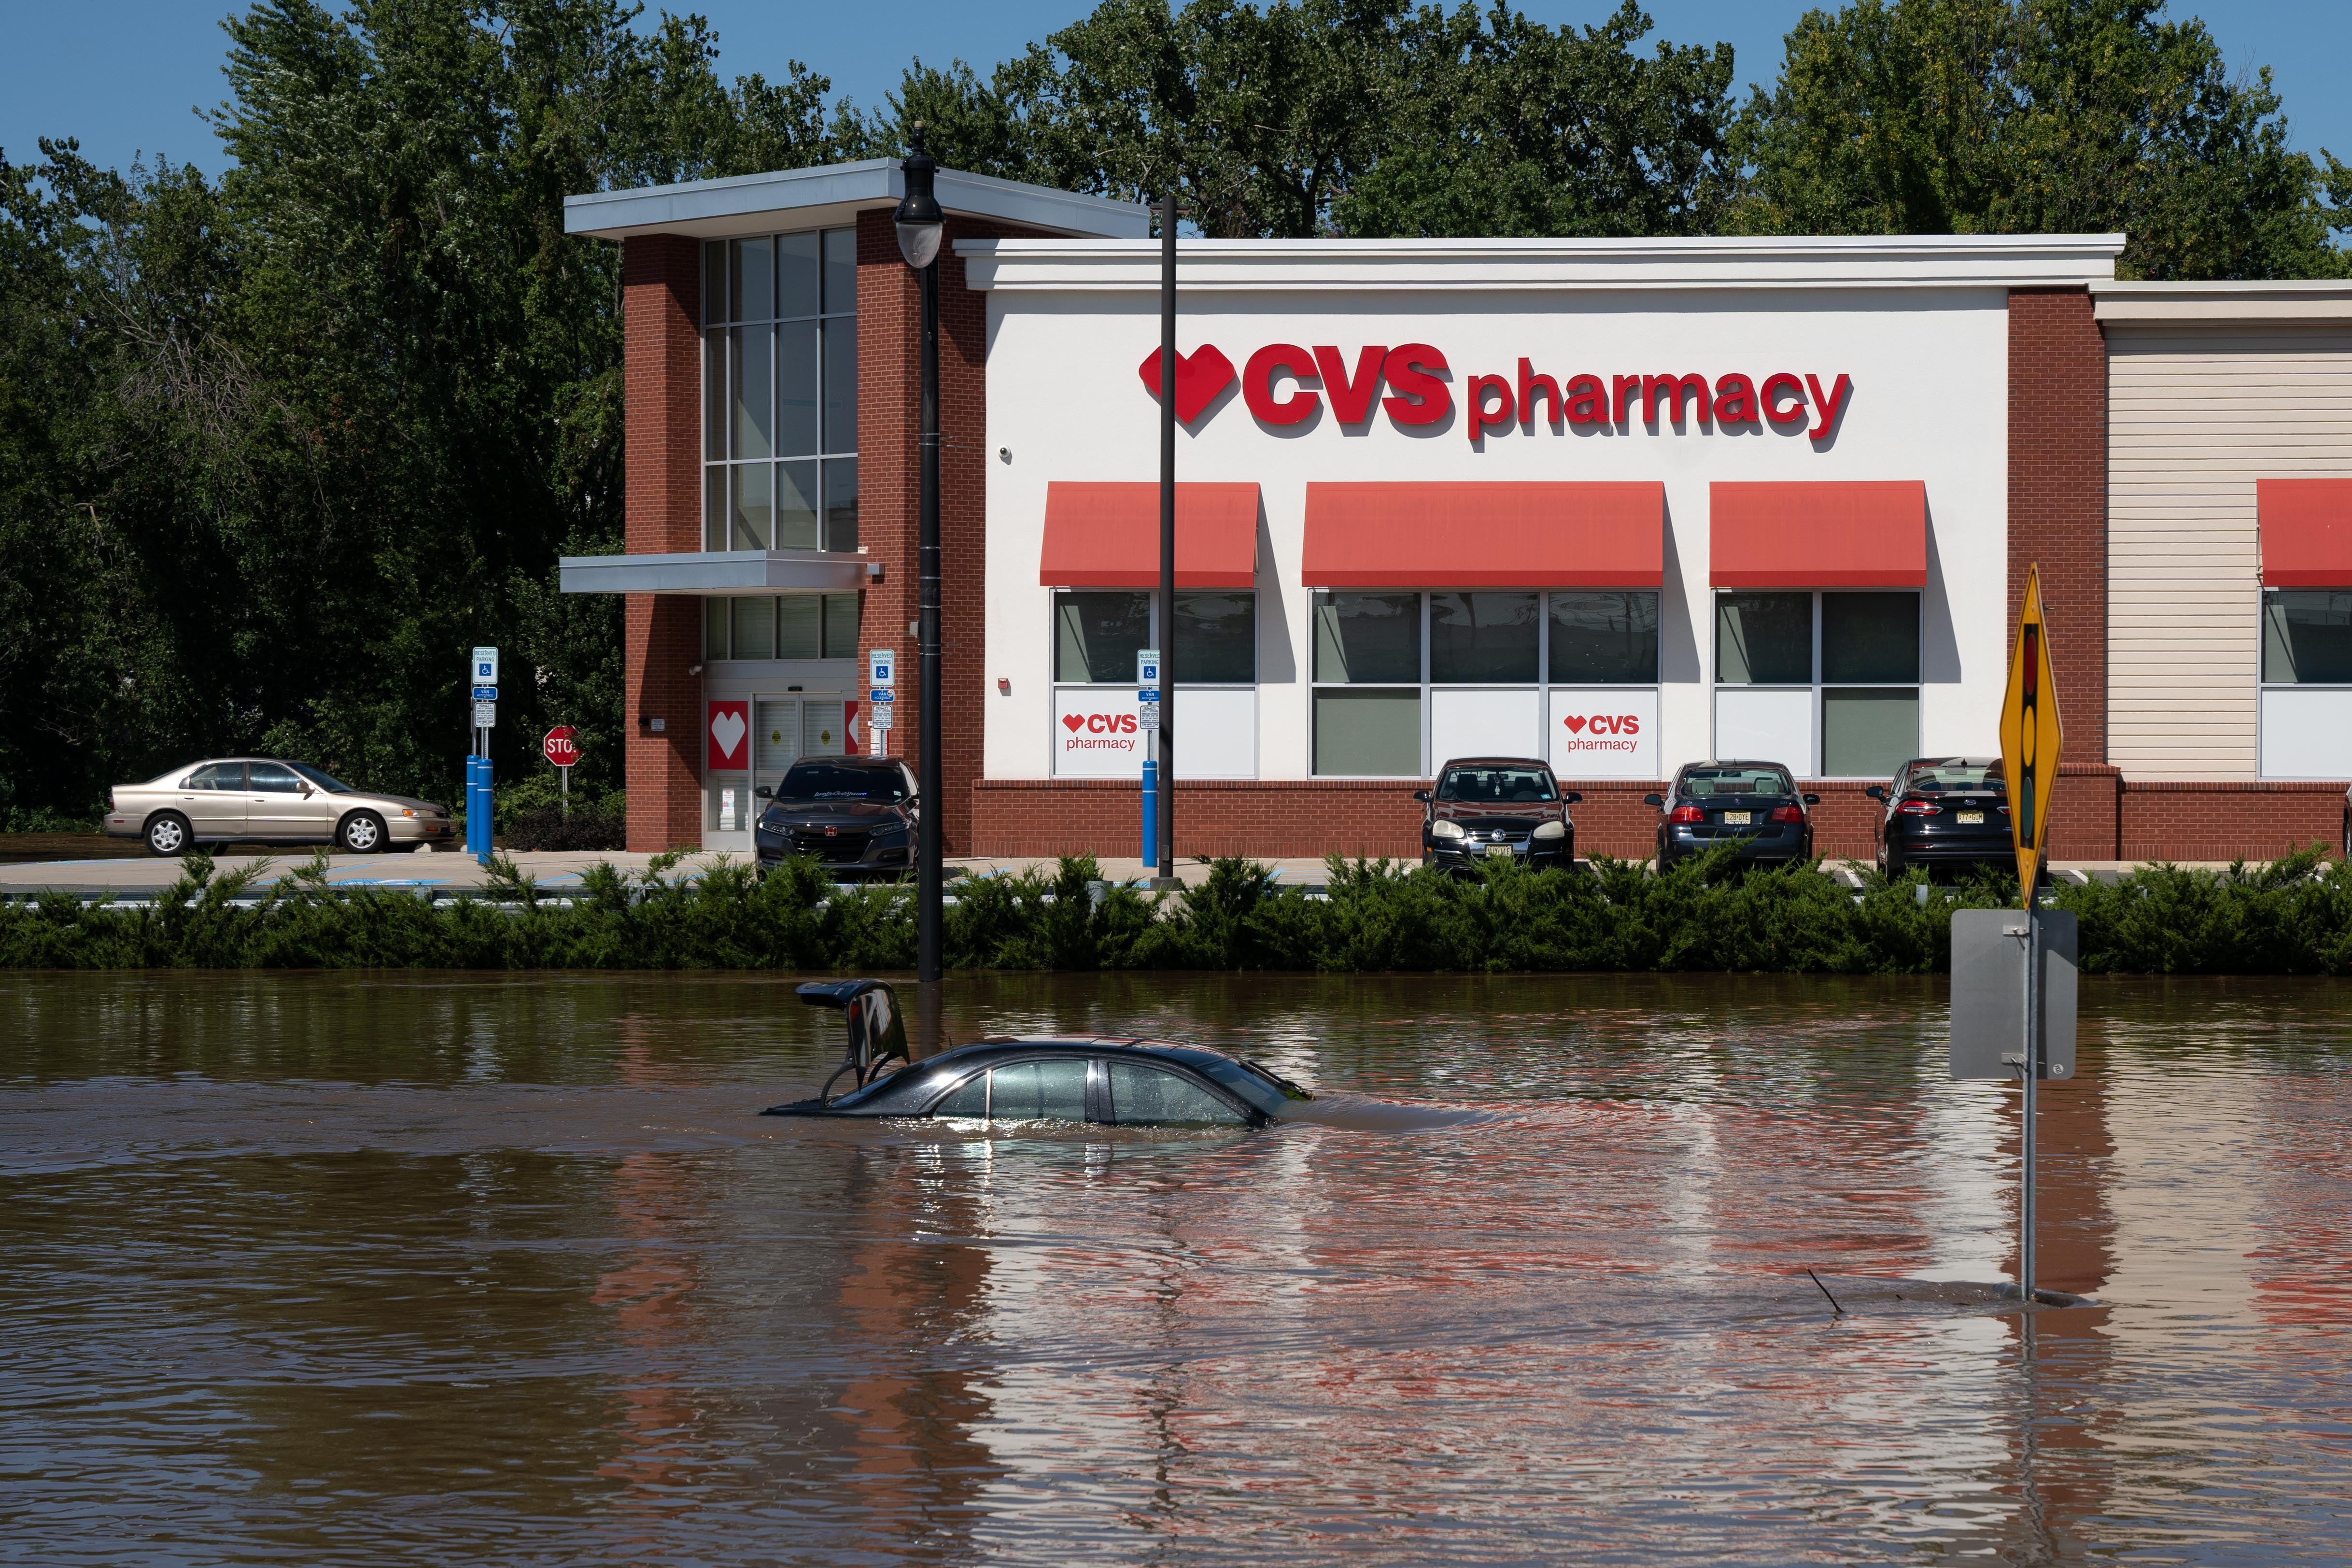 An intersection is flooded by more than 5 feet of water following torrential rains from the remanants of Hurricane Ida in Lodi, N.J., September 2nd, 2021